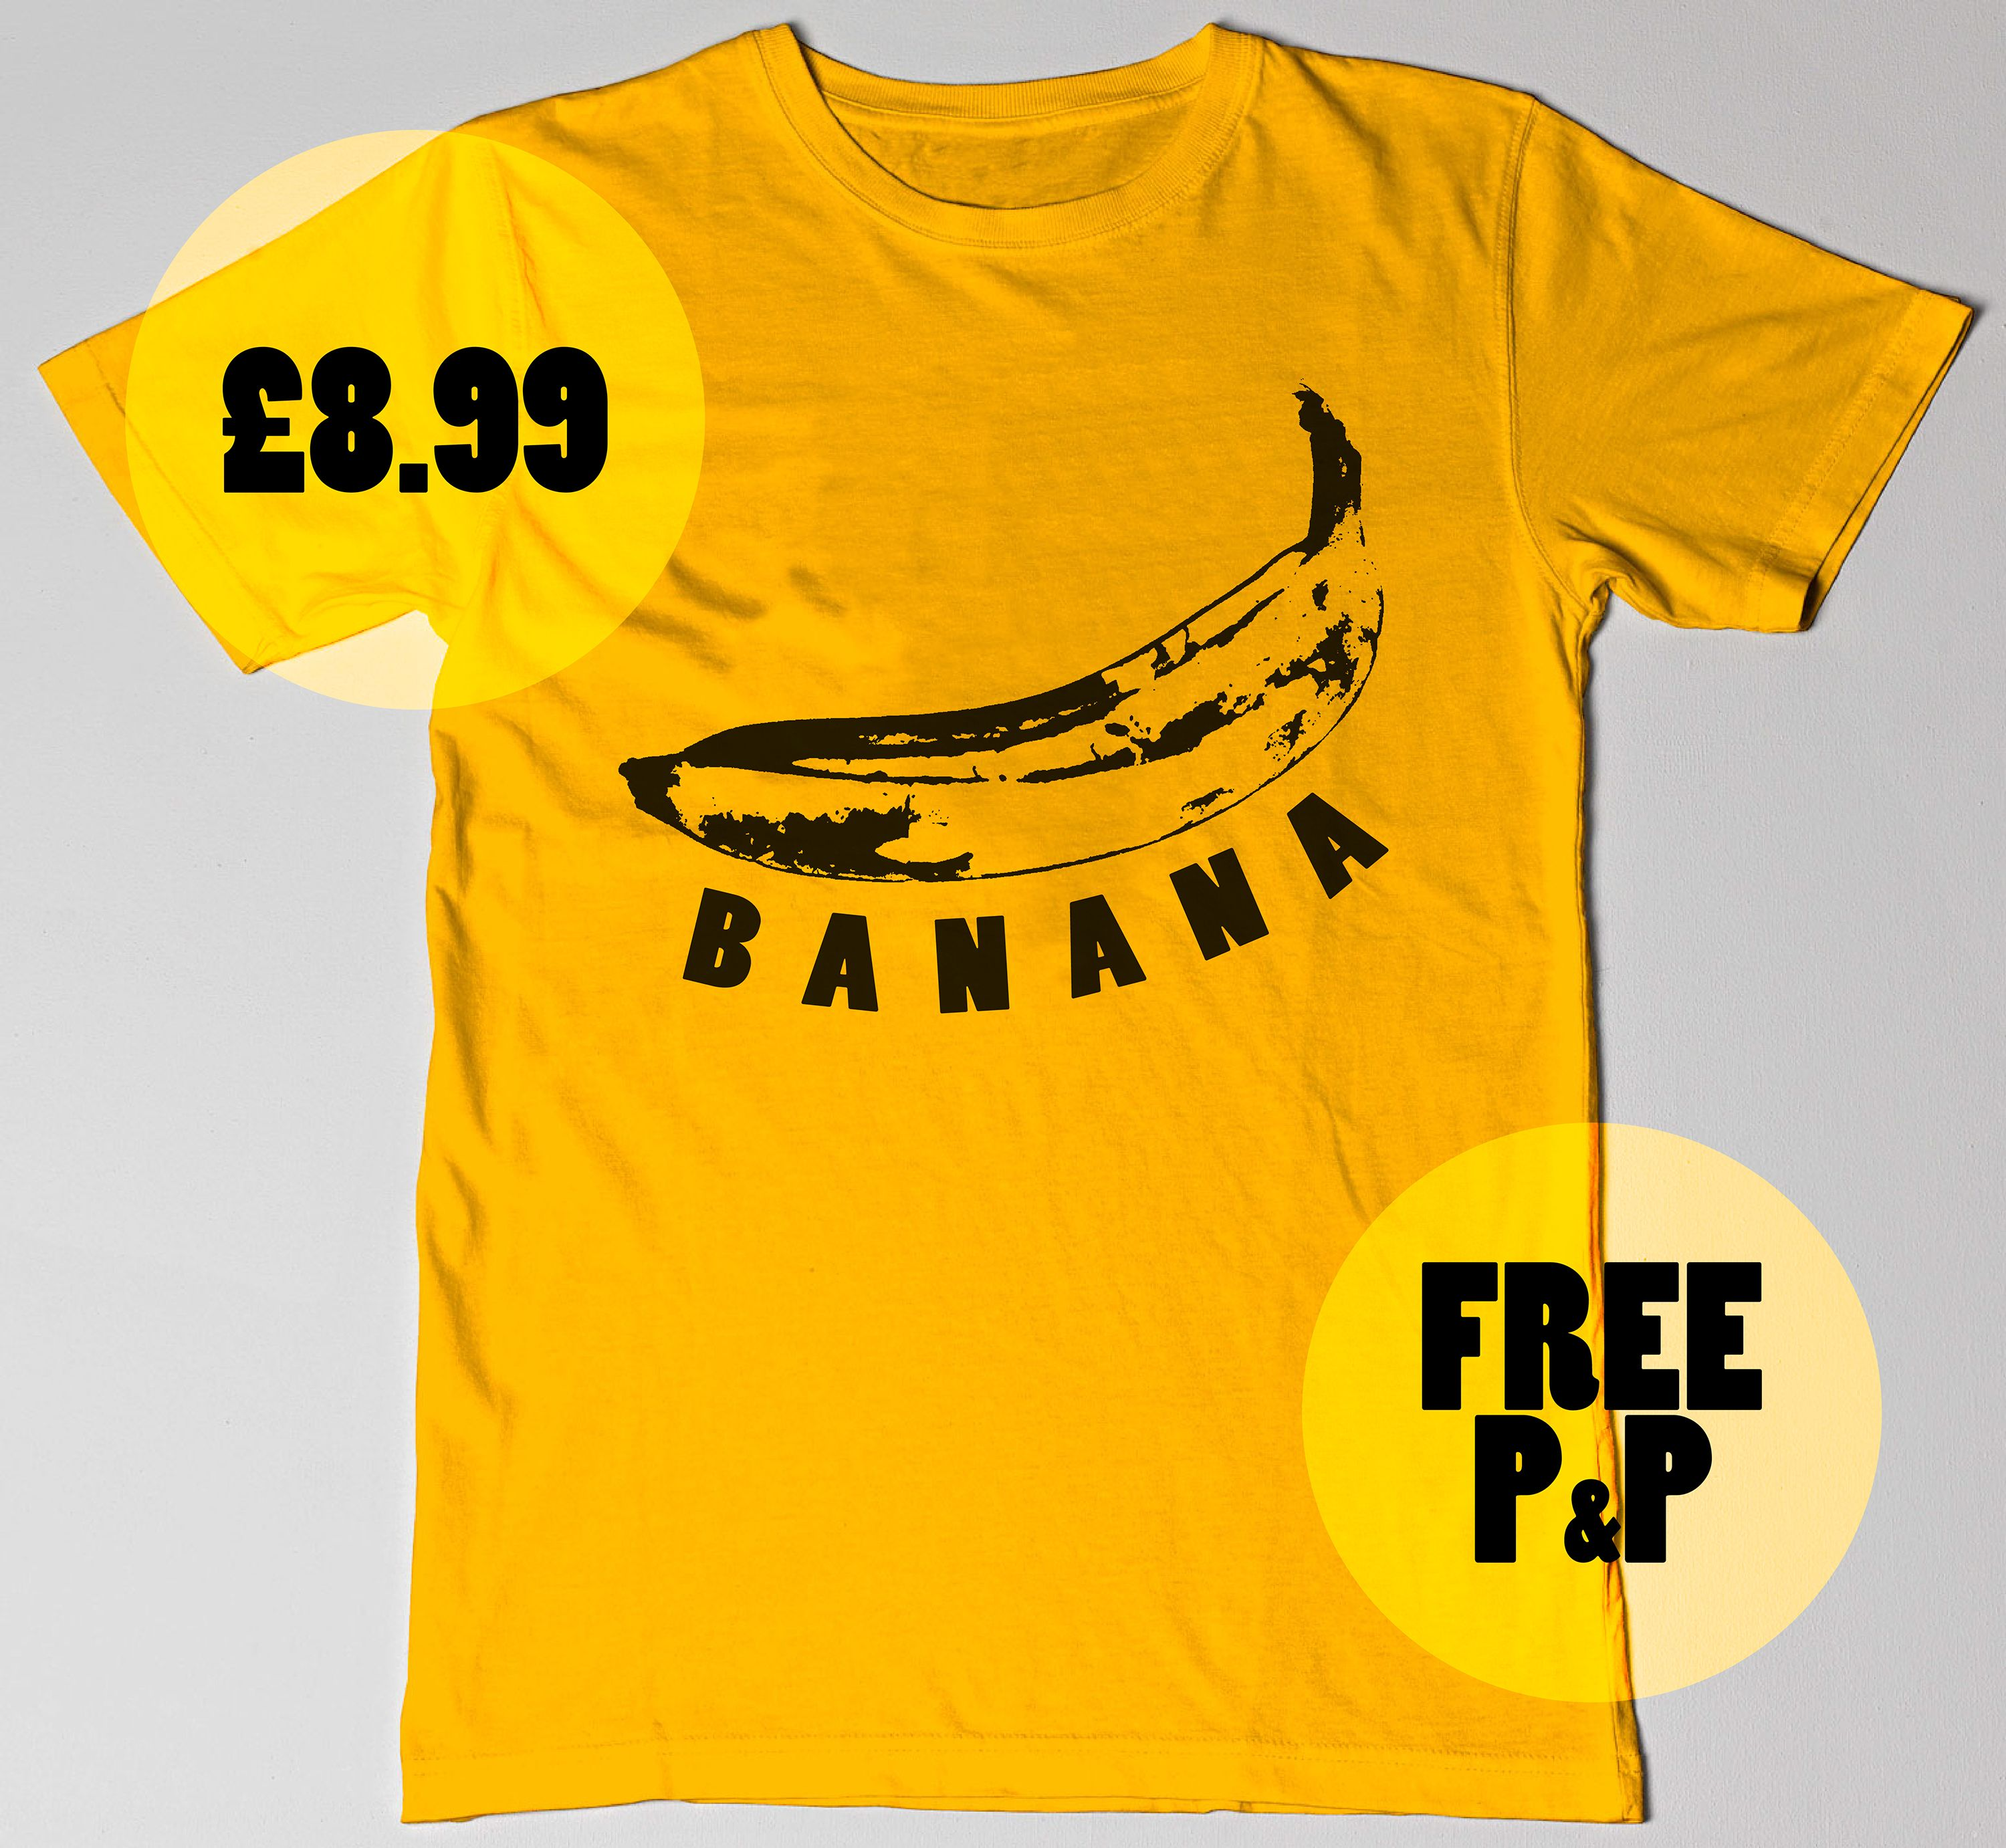 I feel like I'm going Bananas with all these tshirts... eh eh ;D ......... Ok I'll stop haha - - Find this Tee and much more on our store - - #yellow #banana #andywarhol #warhol #tshirt #tee #slogan #slogantee #slogantshirt #fashion #mens #womens #printedtee #printedtshirt